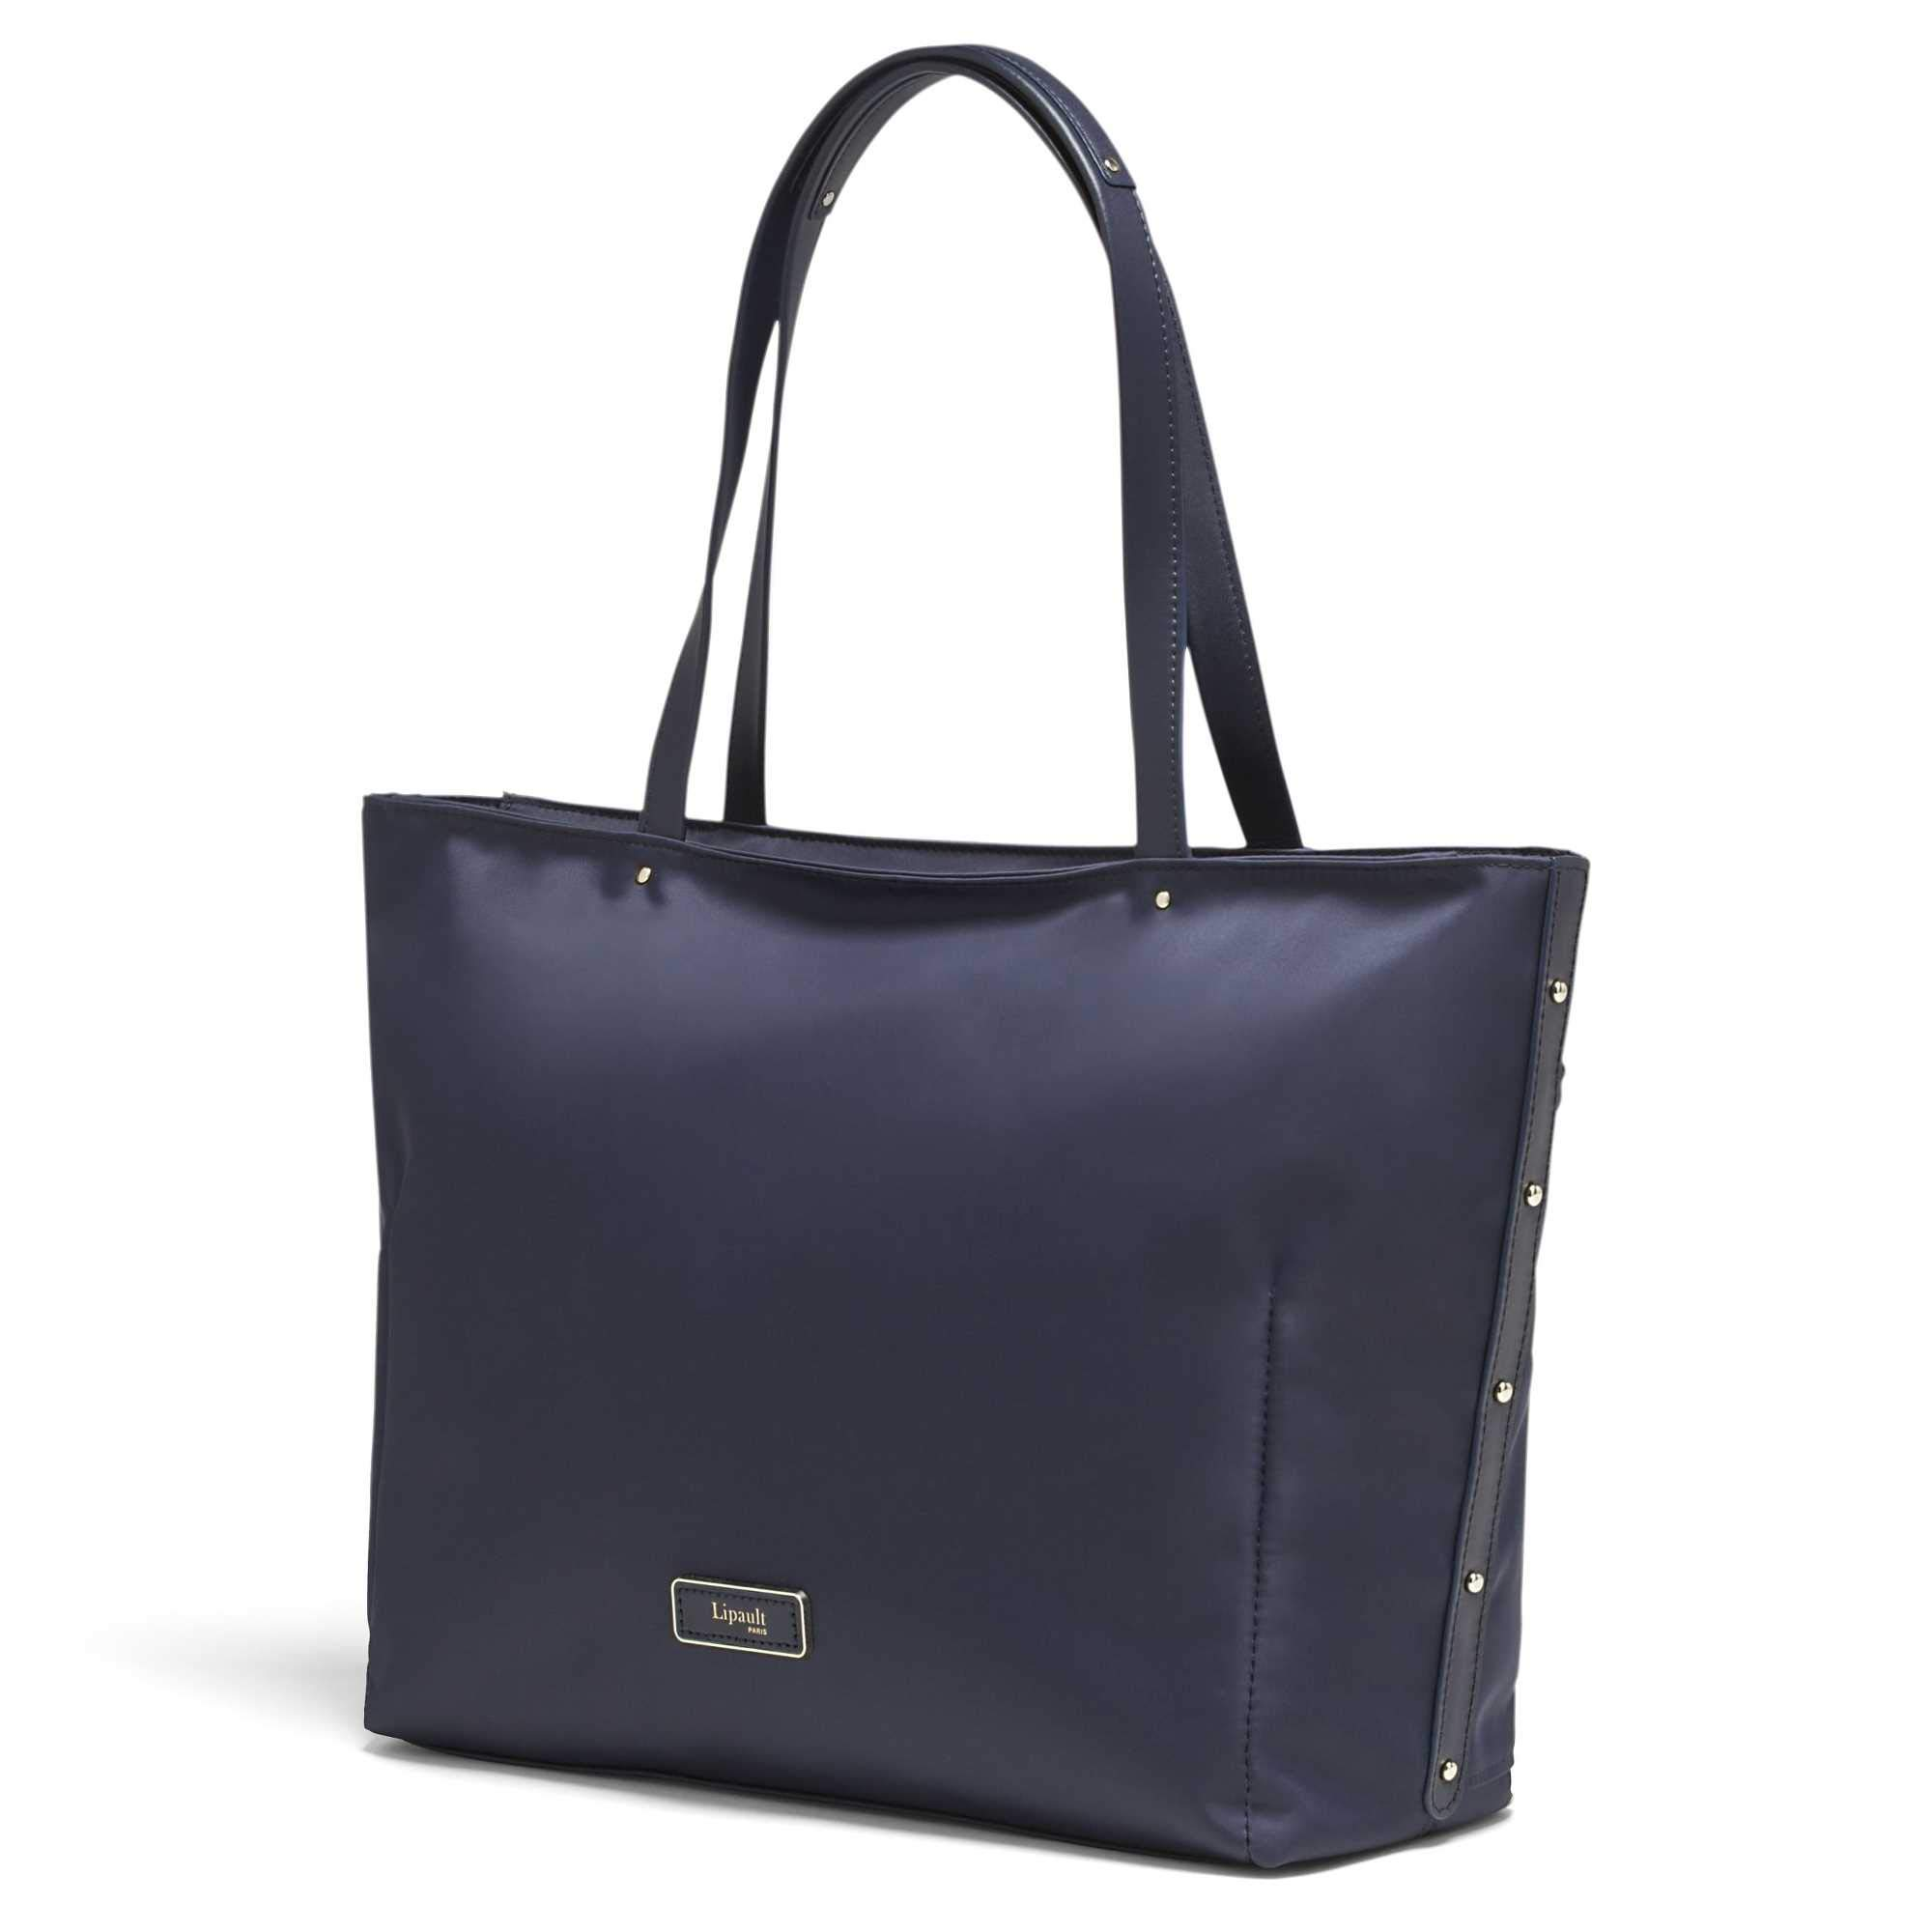 Lipault - Business Avenue Laptop Tote Bag - Top Handle Shoulder Handbag For Women - Night Blue, Medium by Lipault (Image #2)